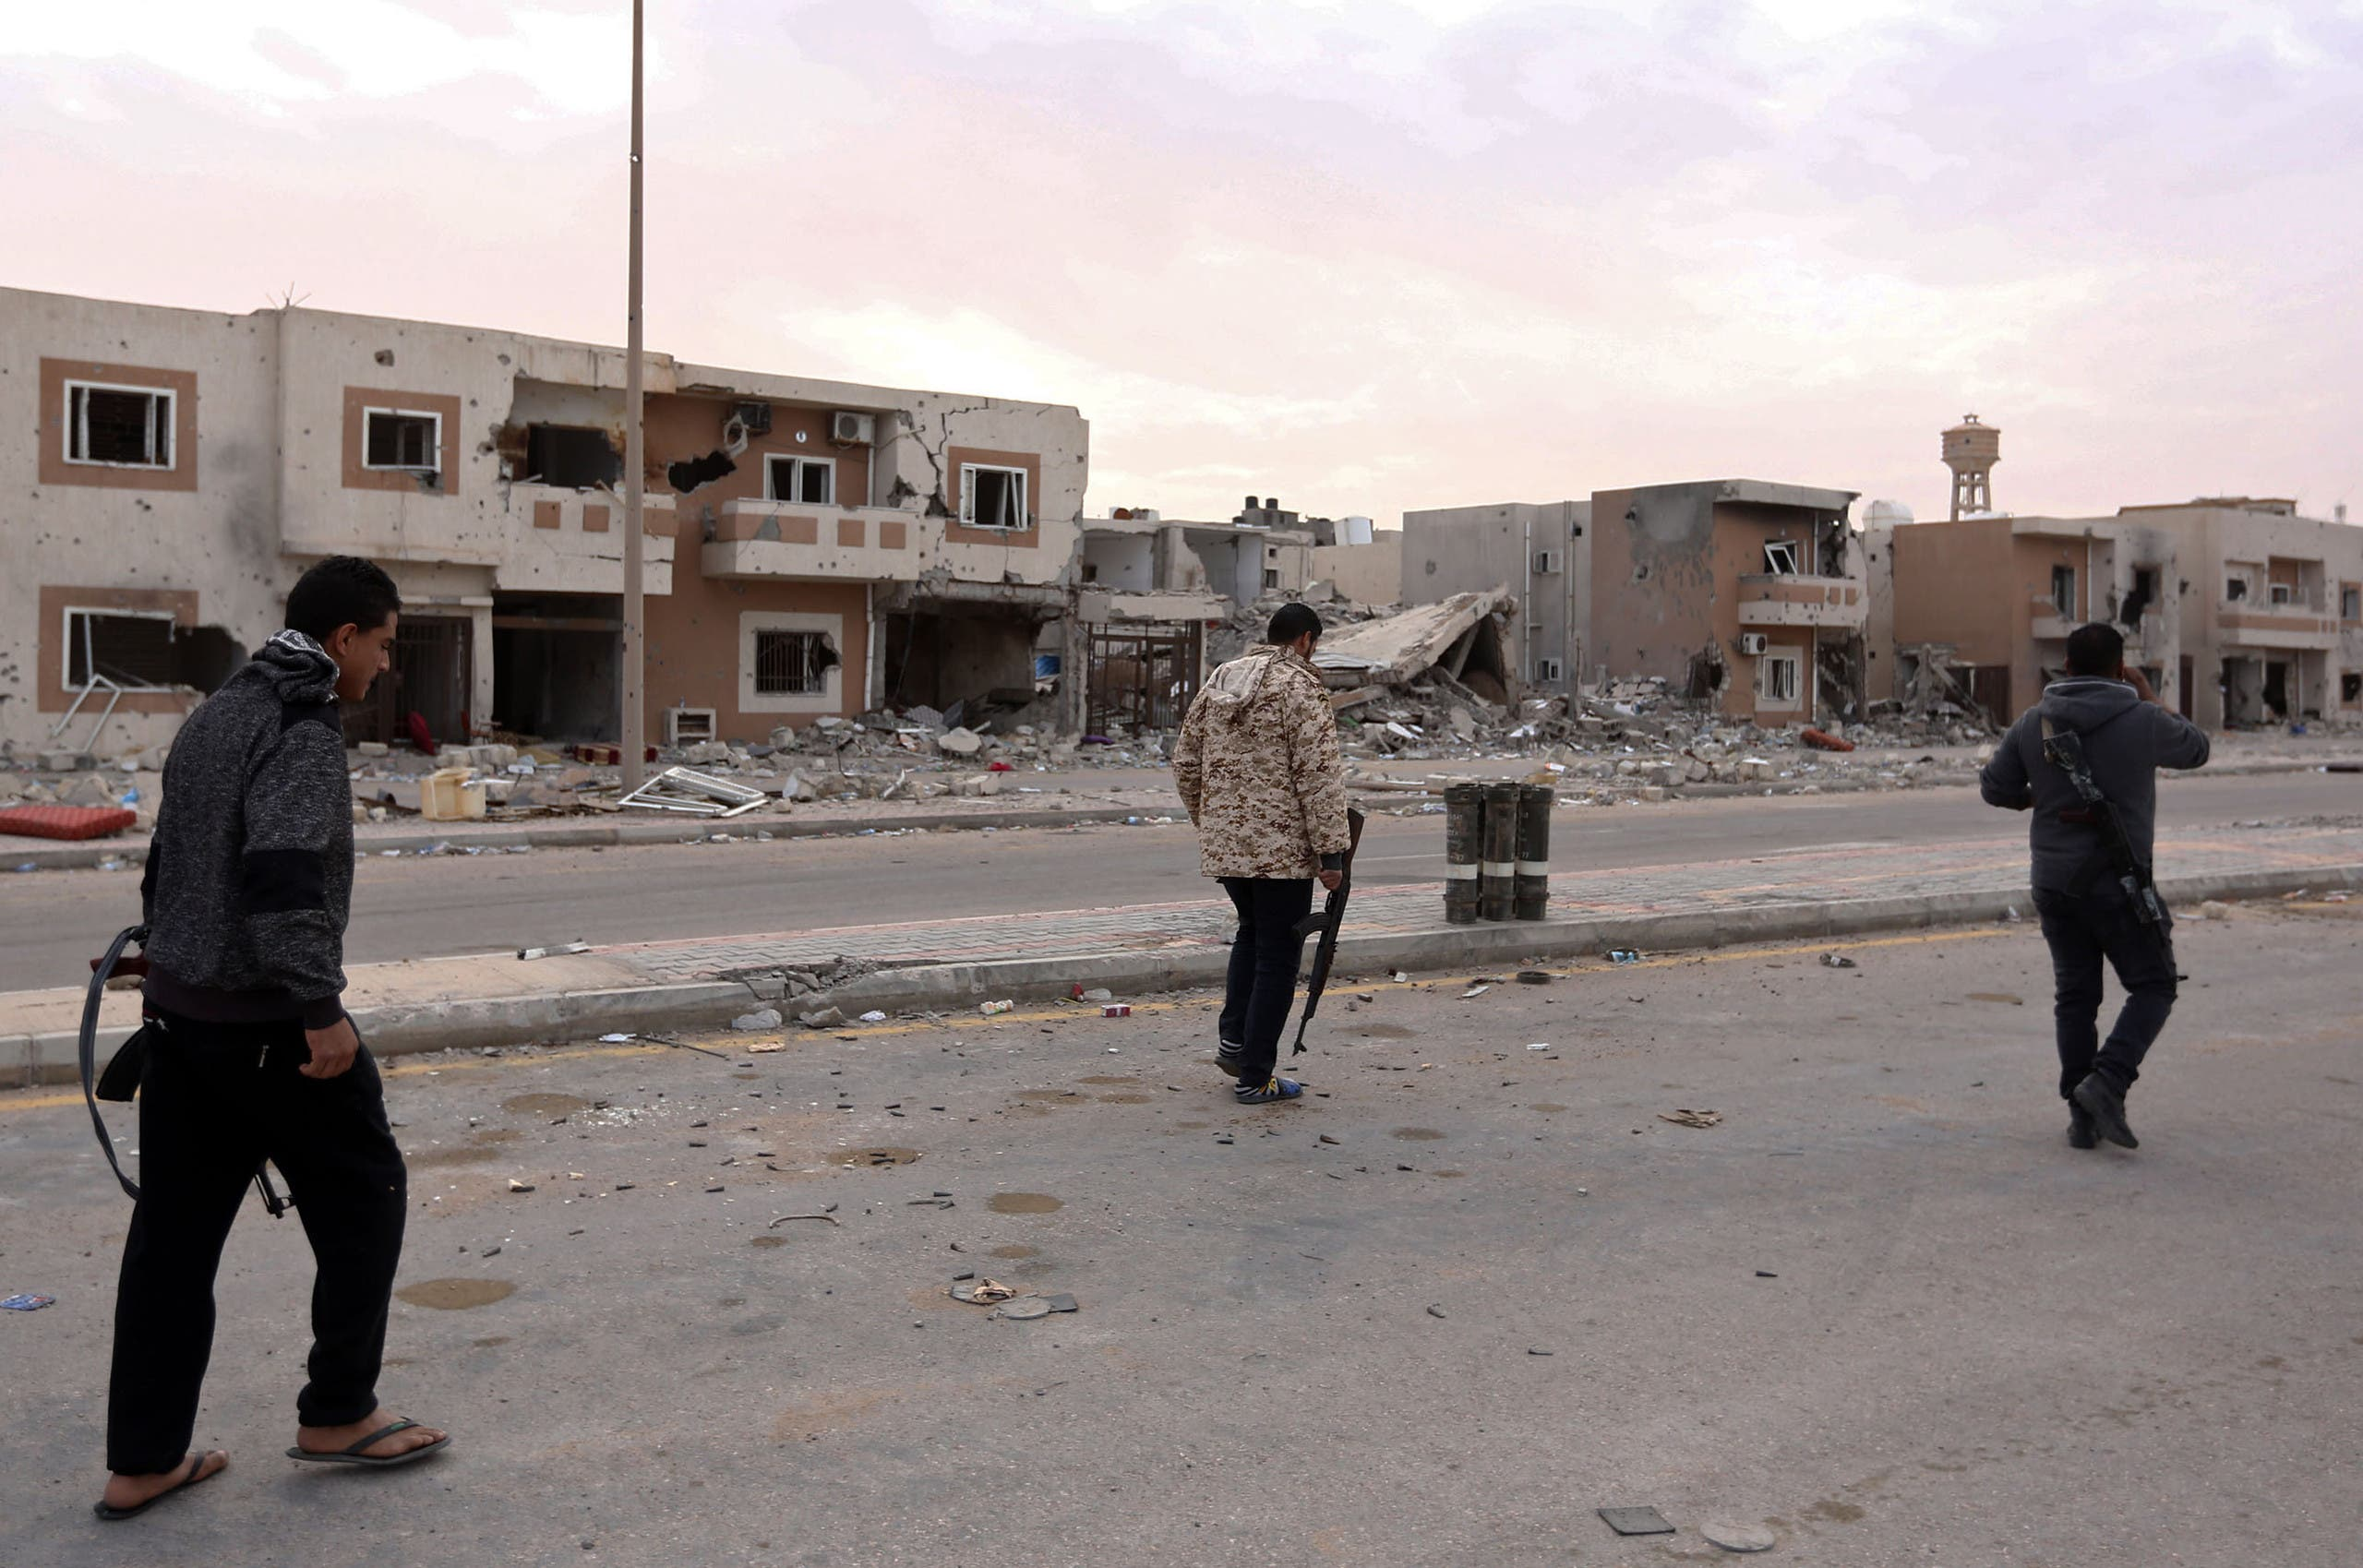 Fighters from the Libyan forces of the National Accord (GNA) patrol Sirte's Al-Giza Al-Bahriya district on December 20, 2016 after they drove the ISIS group out of its Libyan stronghold. (File photo)